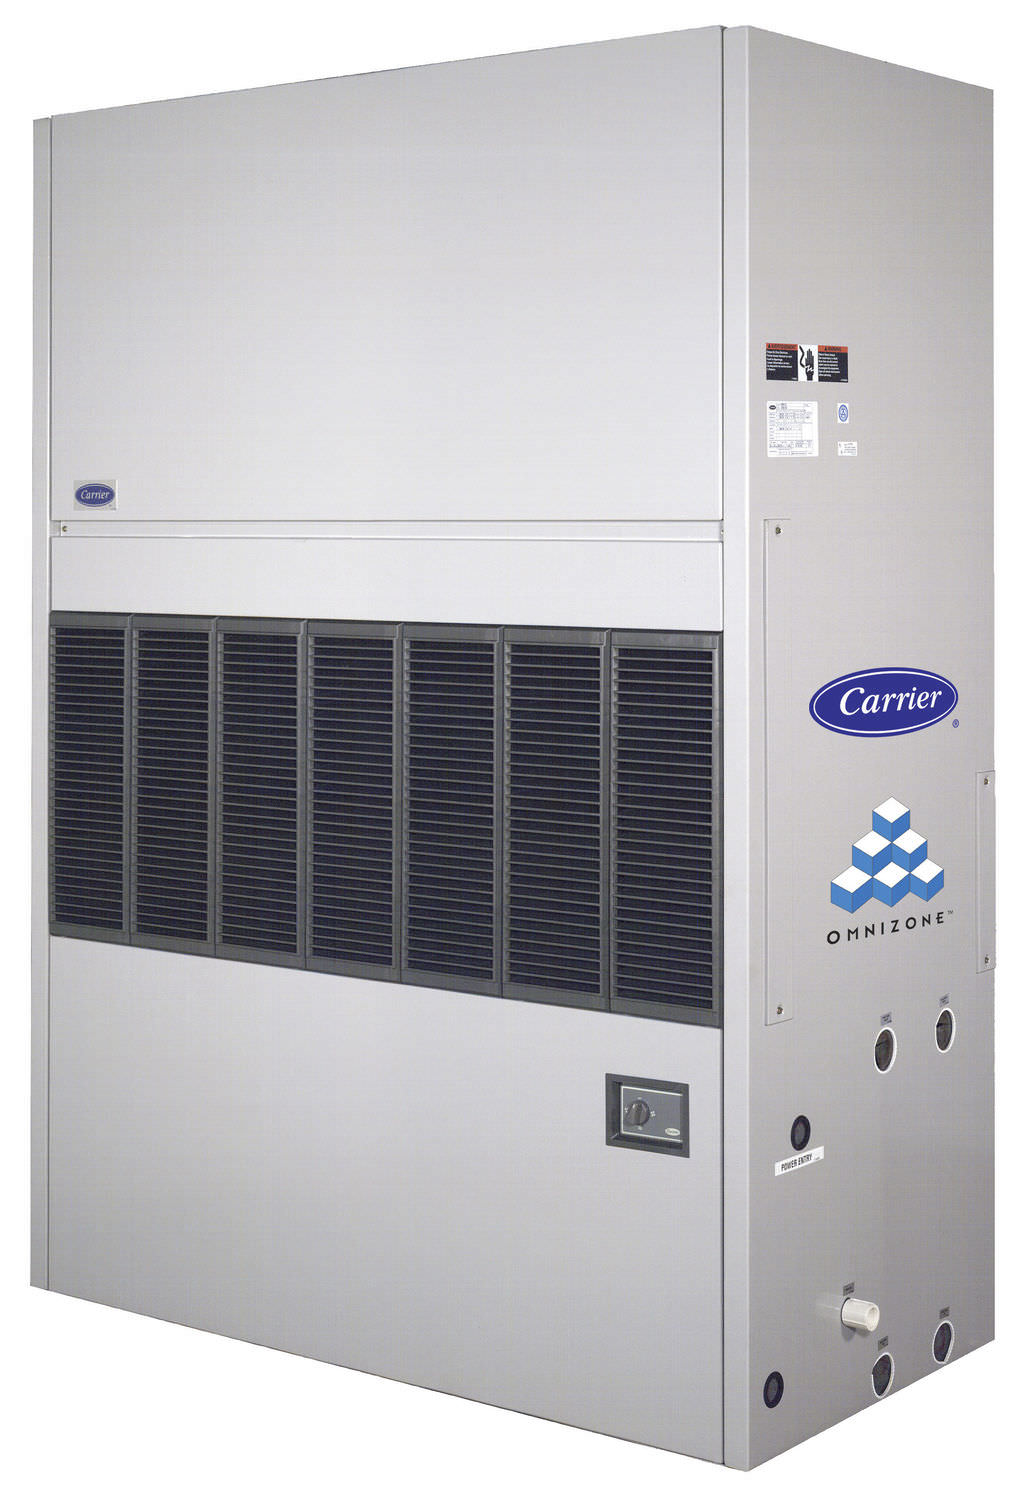 Water cooled chiller 50BRN OMNIZONE™ CARRIER commercial #356096